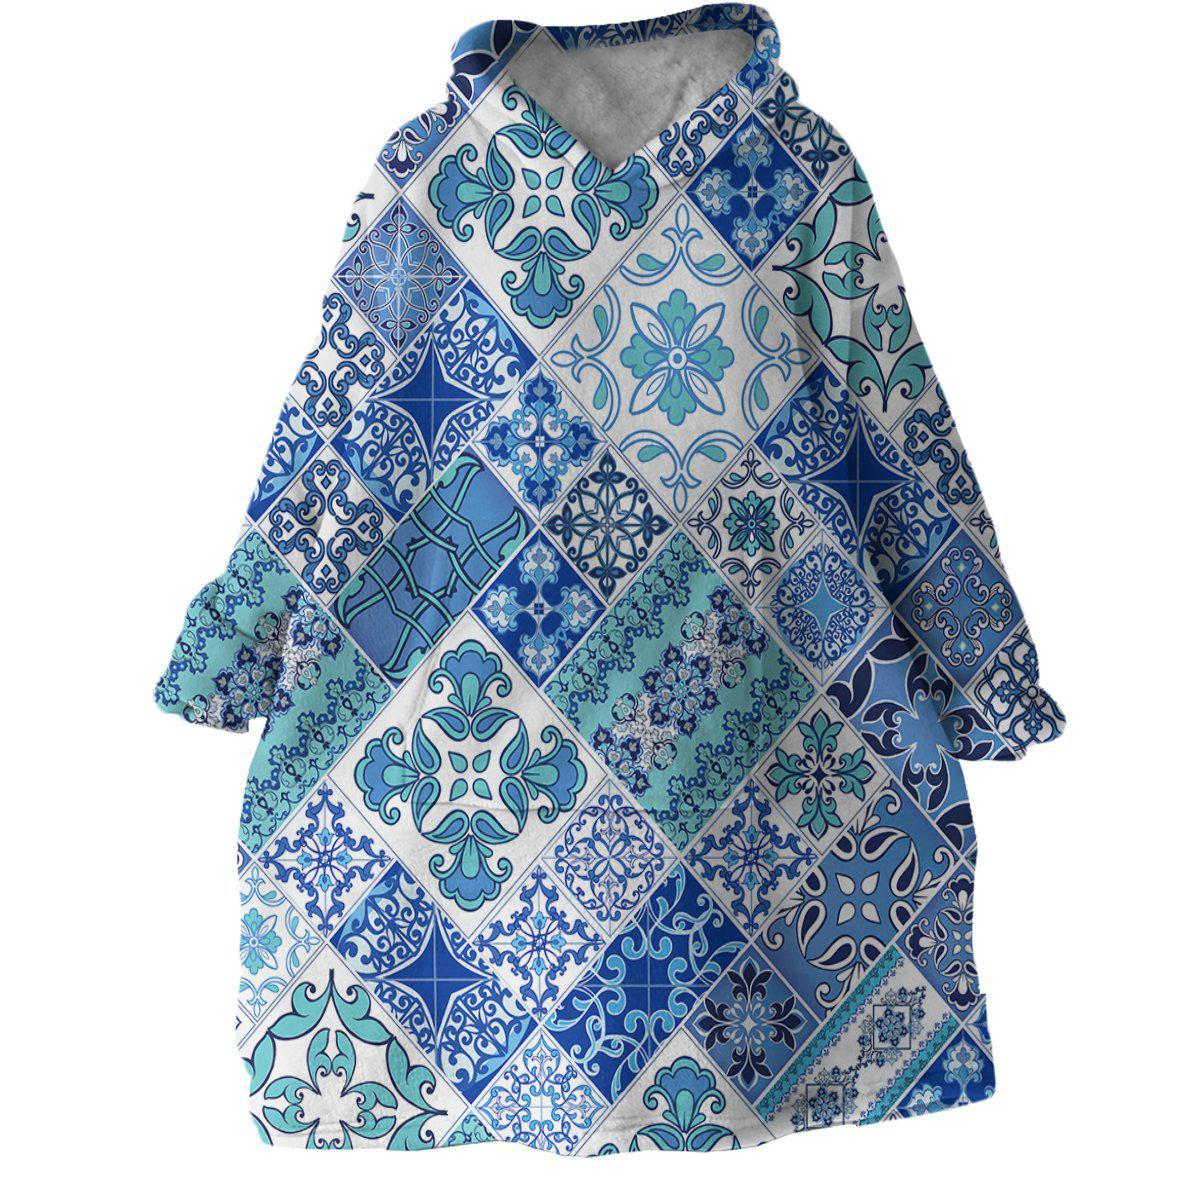 Coastal Mosaic Wearable Blanket Hoodie